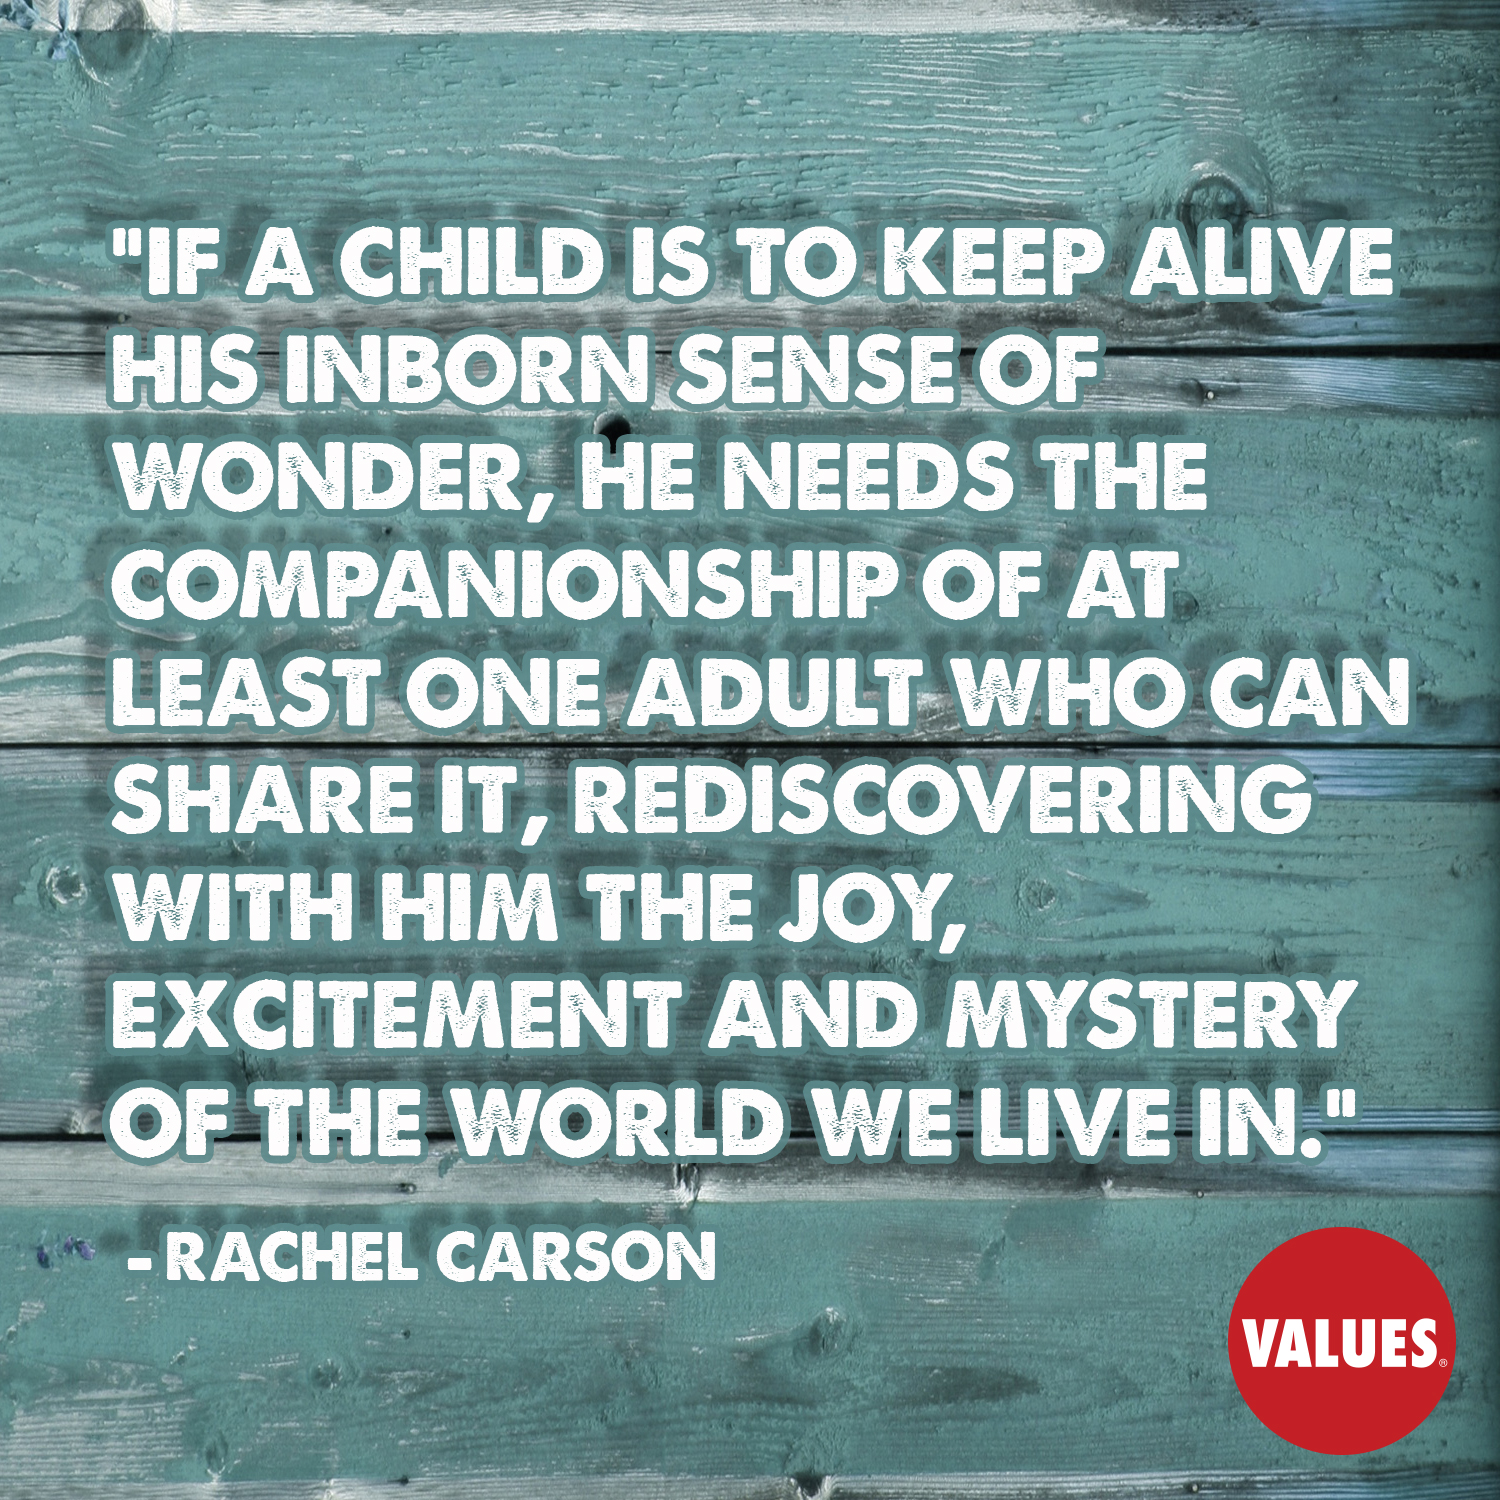 If a child is to keep alive his inborn sense of wonder, he needs the companionship of at least one adult who can share it, rediscovering with him the joy, excitement and mystery of the world we live in. —Rachel Carson